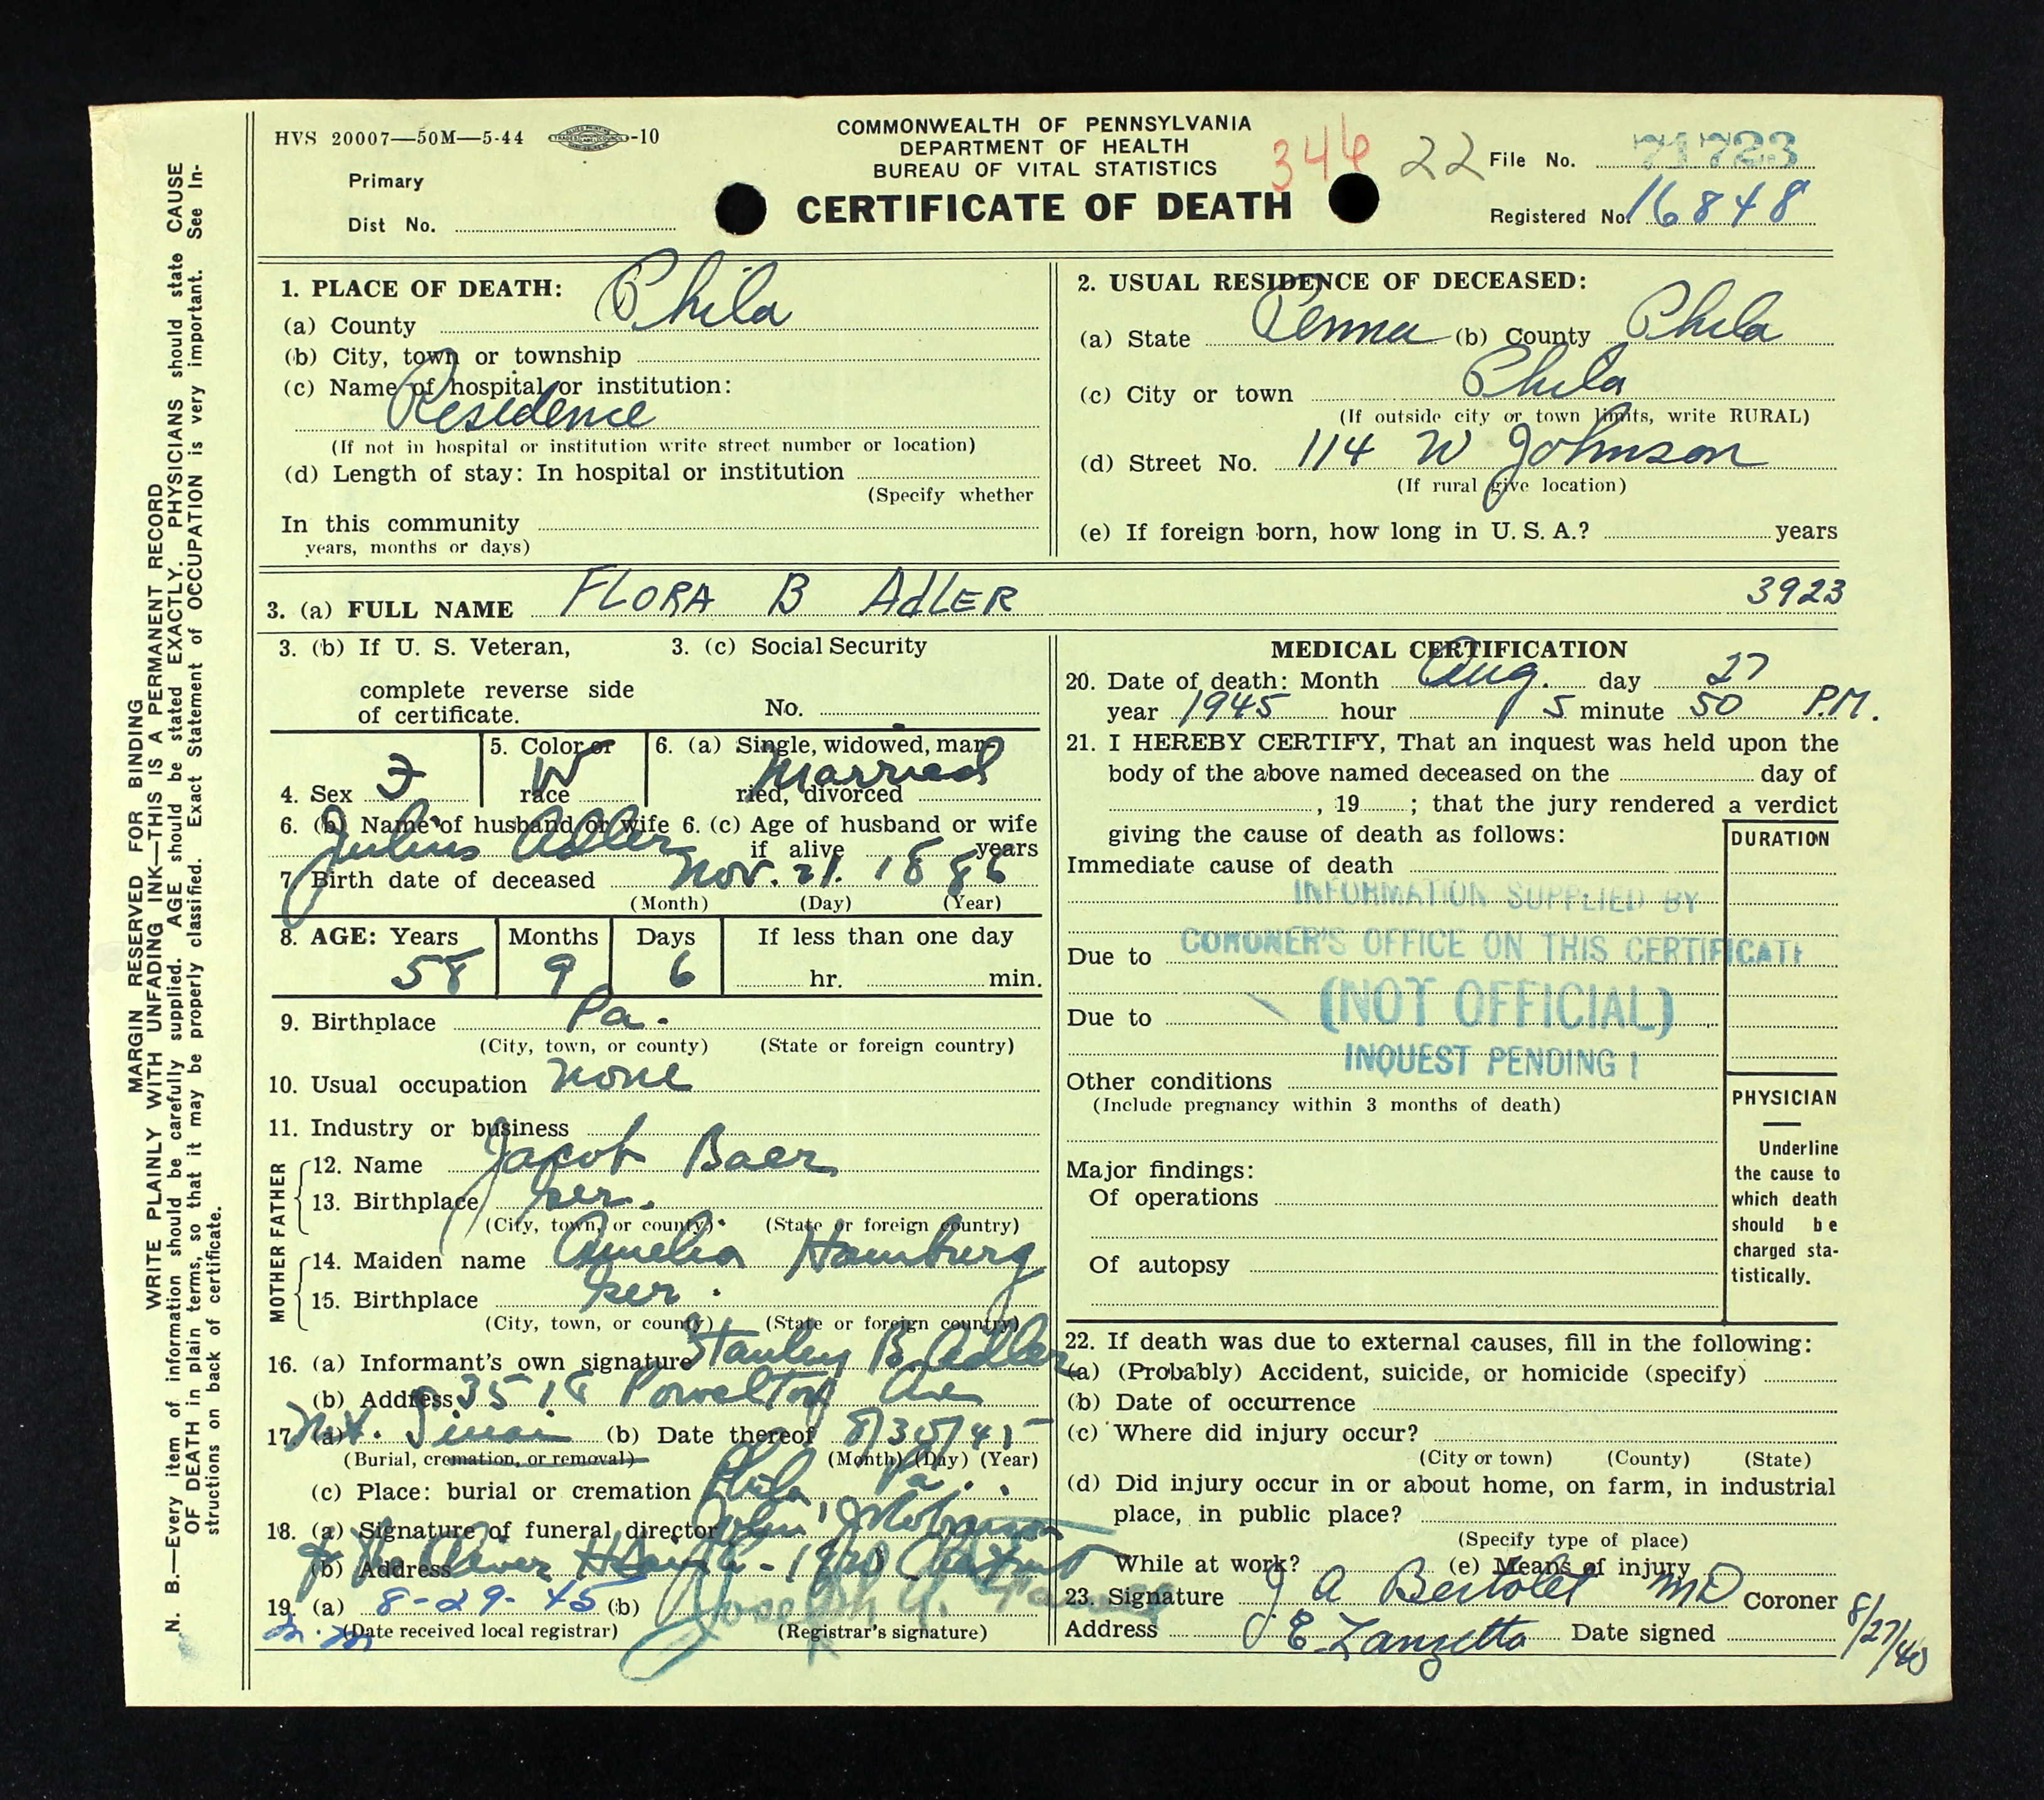 University of pennsylvania brotmanblog a family journey flora baer death certificate preliminary aiddatafo Images